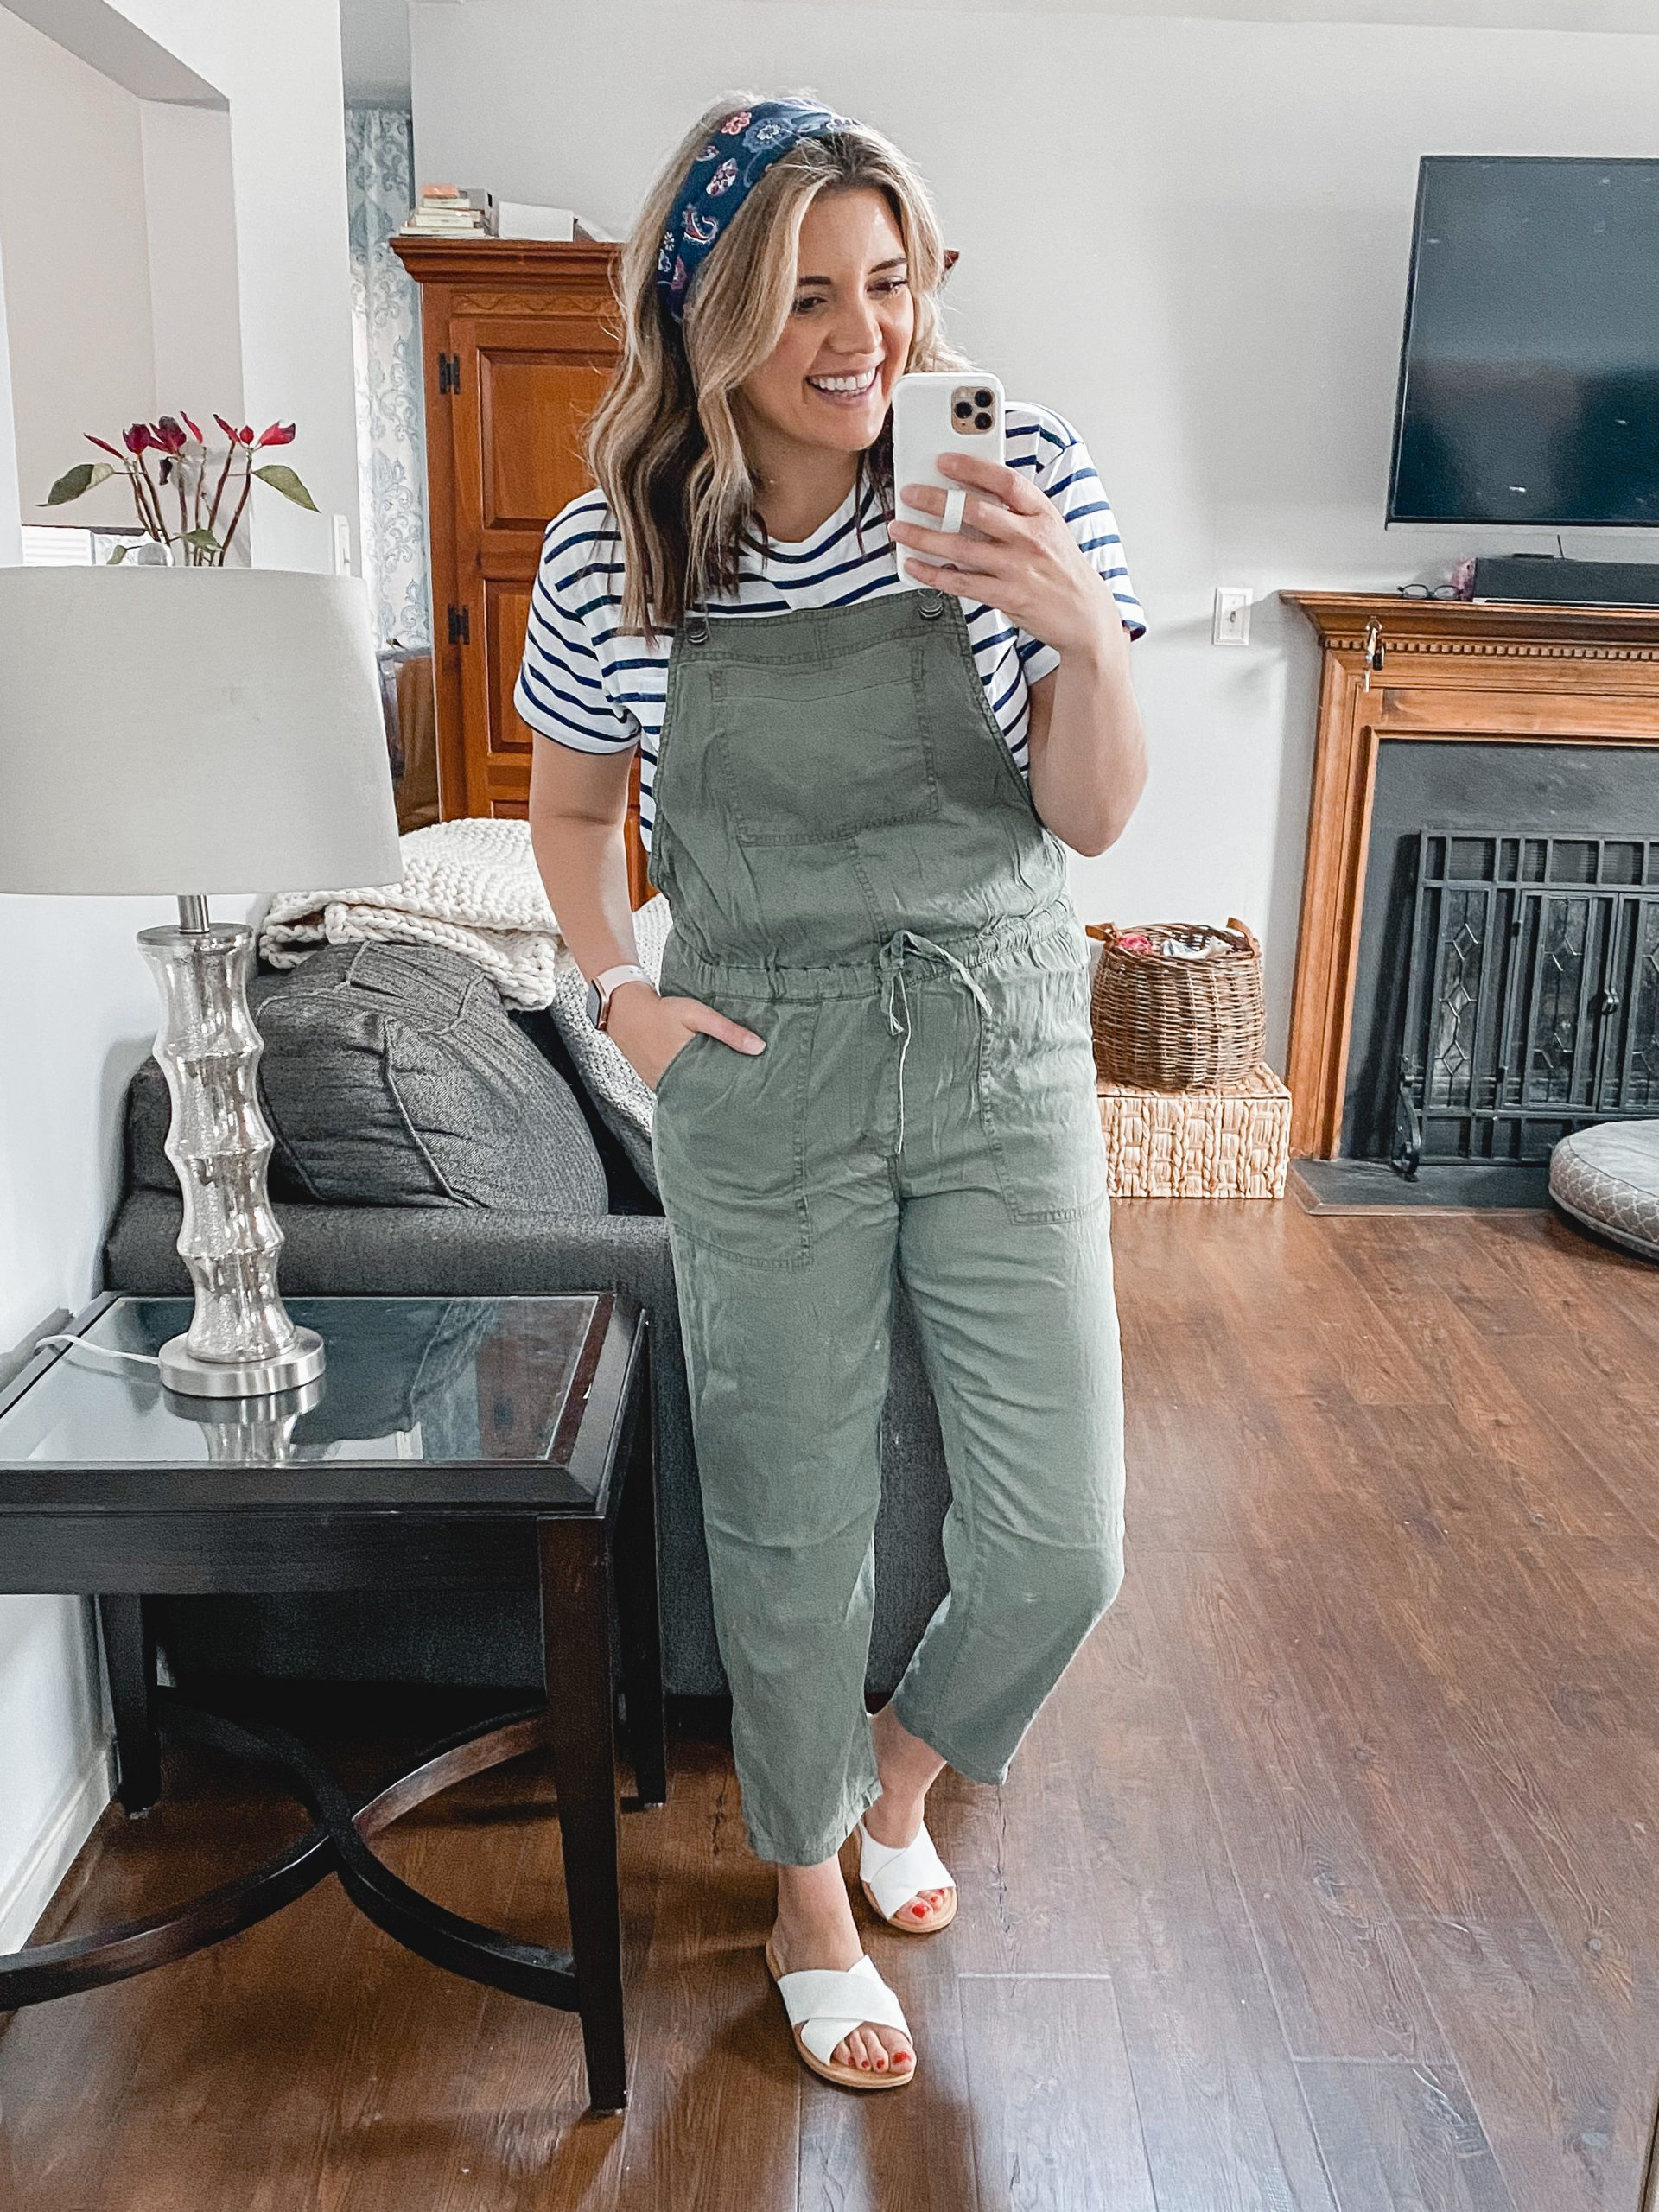 Virginia blogger, Lauren Dix, shares over ten Walmart outfits for spring!